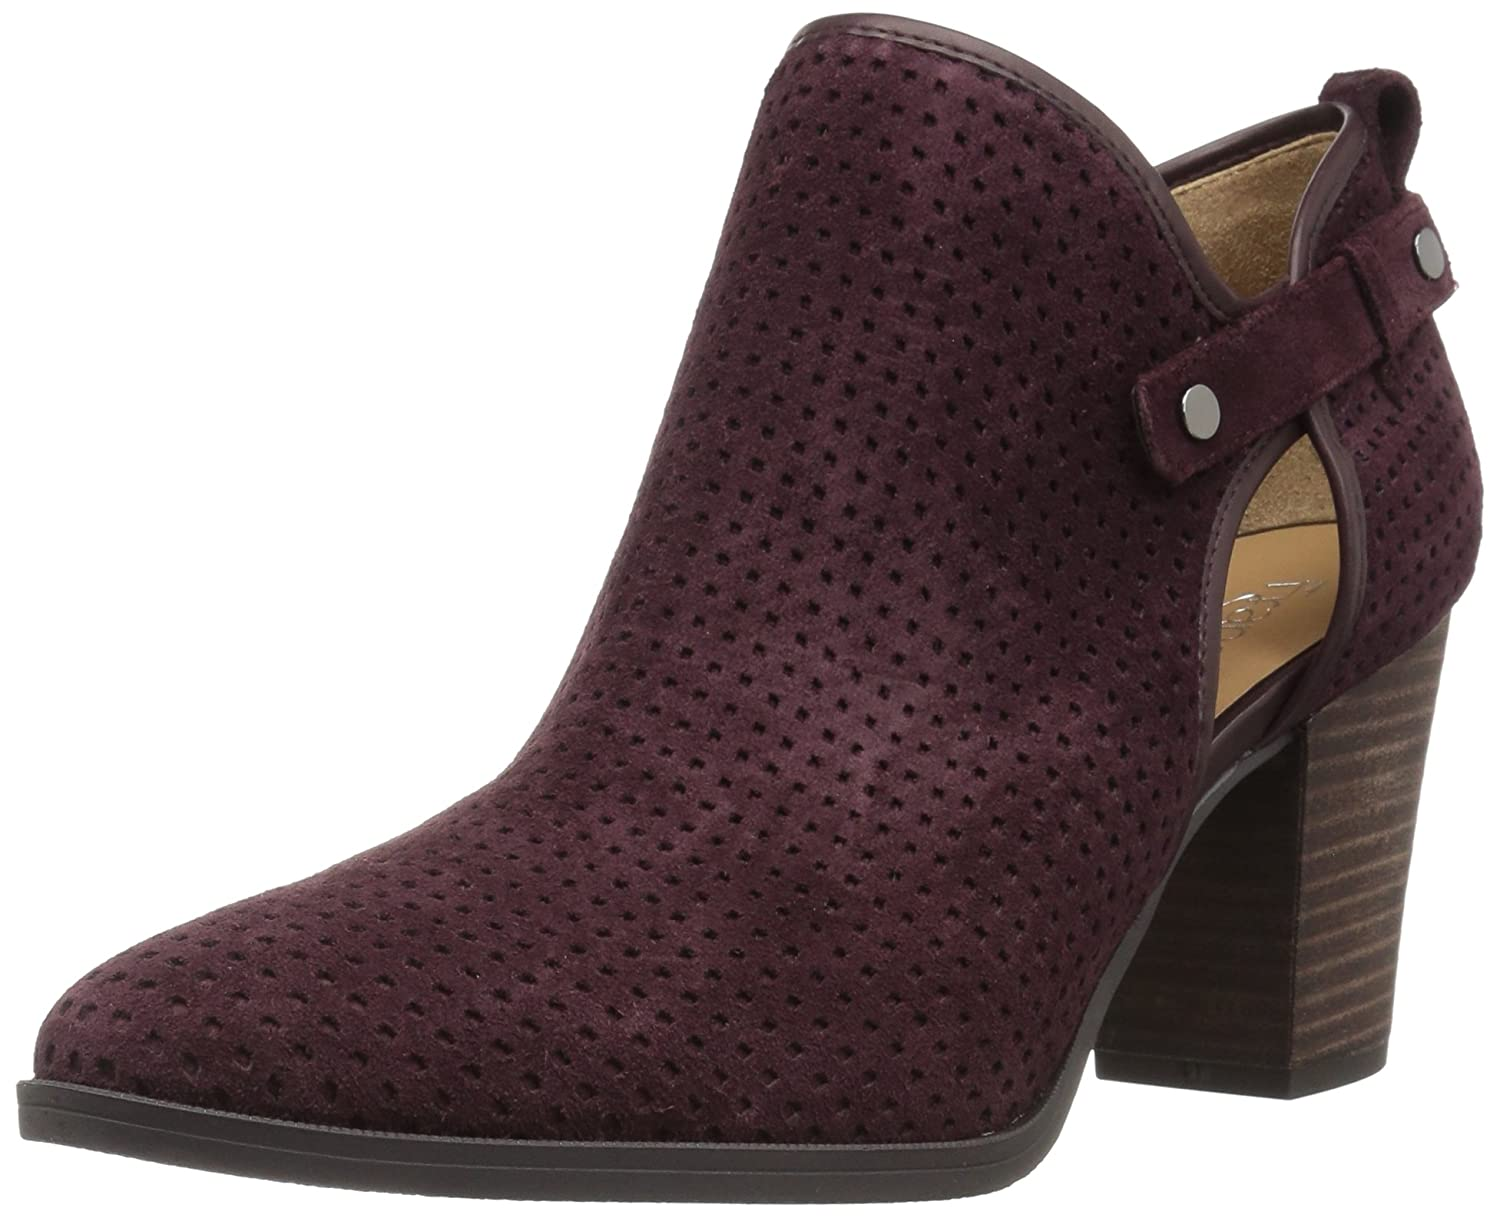 Franco Sarto Women's Dakota Ankle Boot B073YDXGGG 8.5 B(M) US|Aubergine